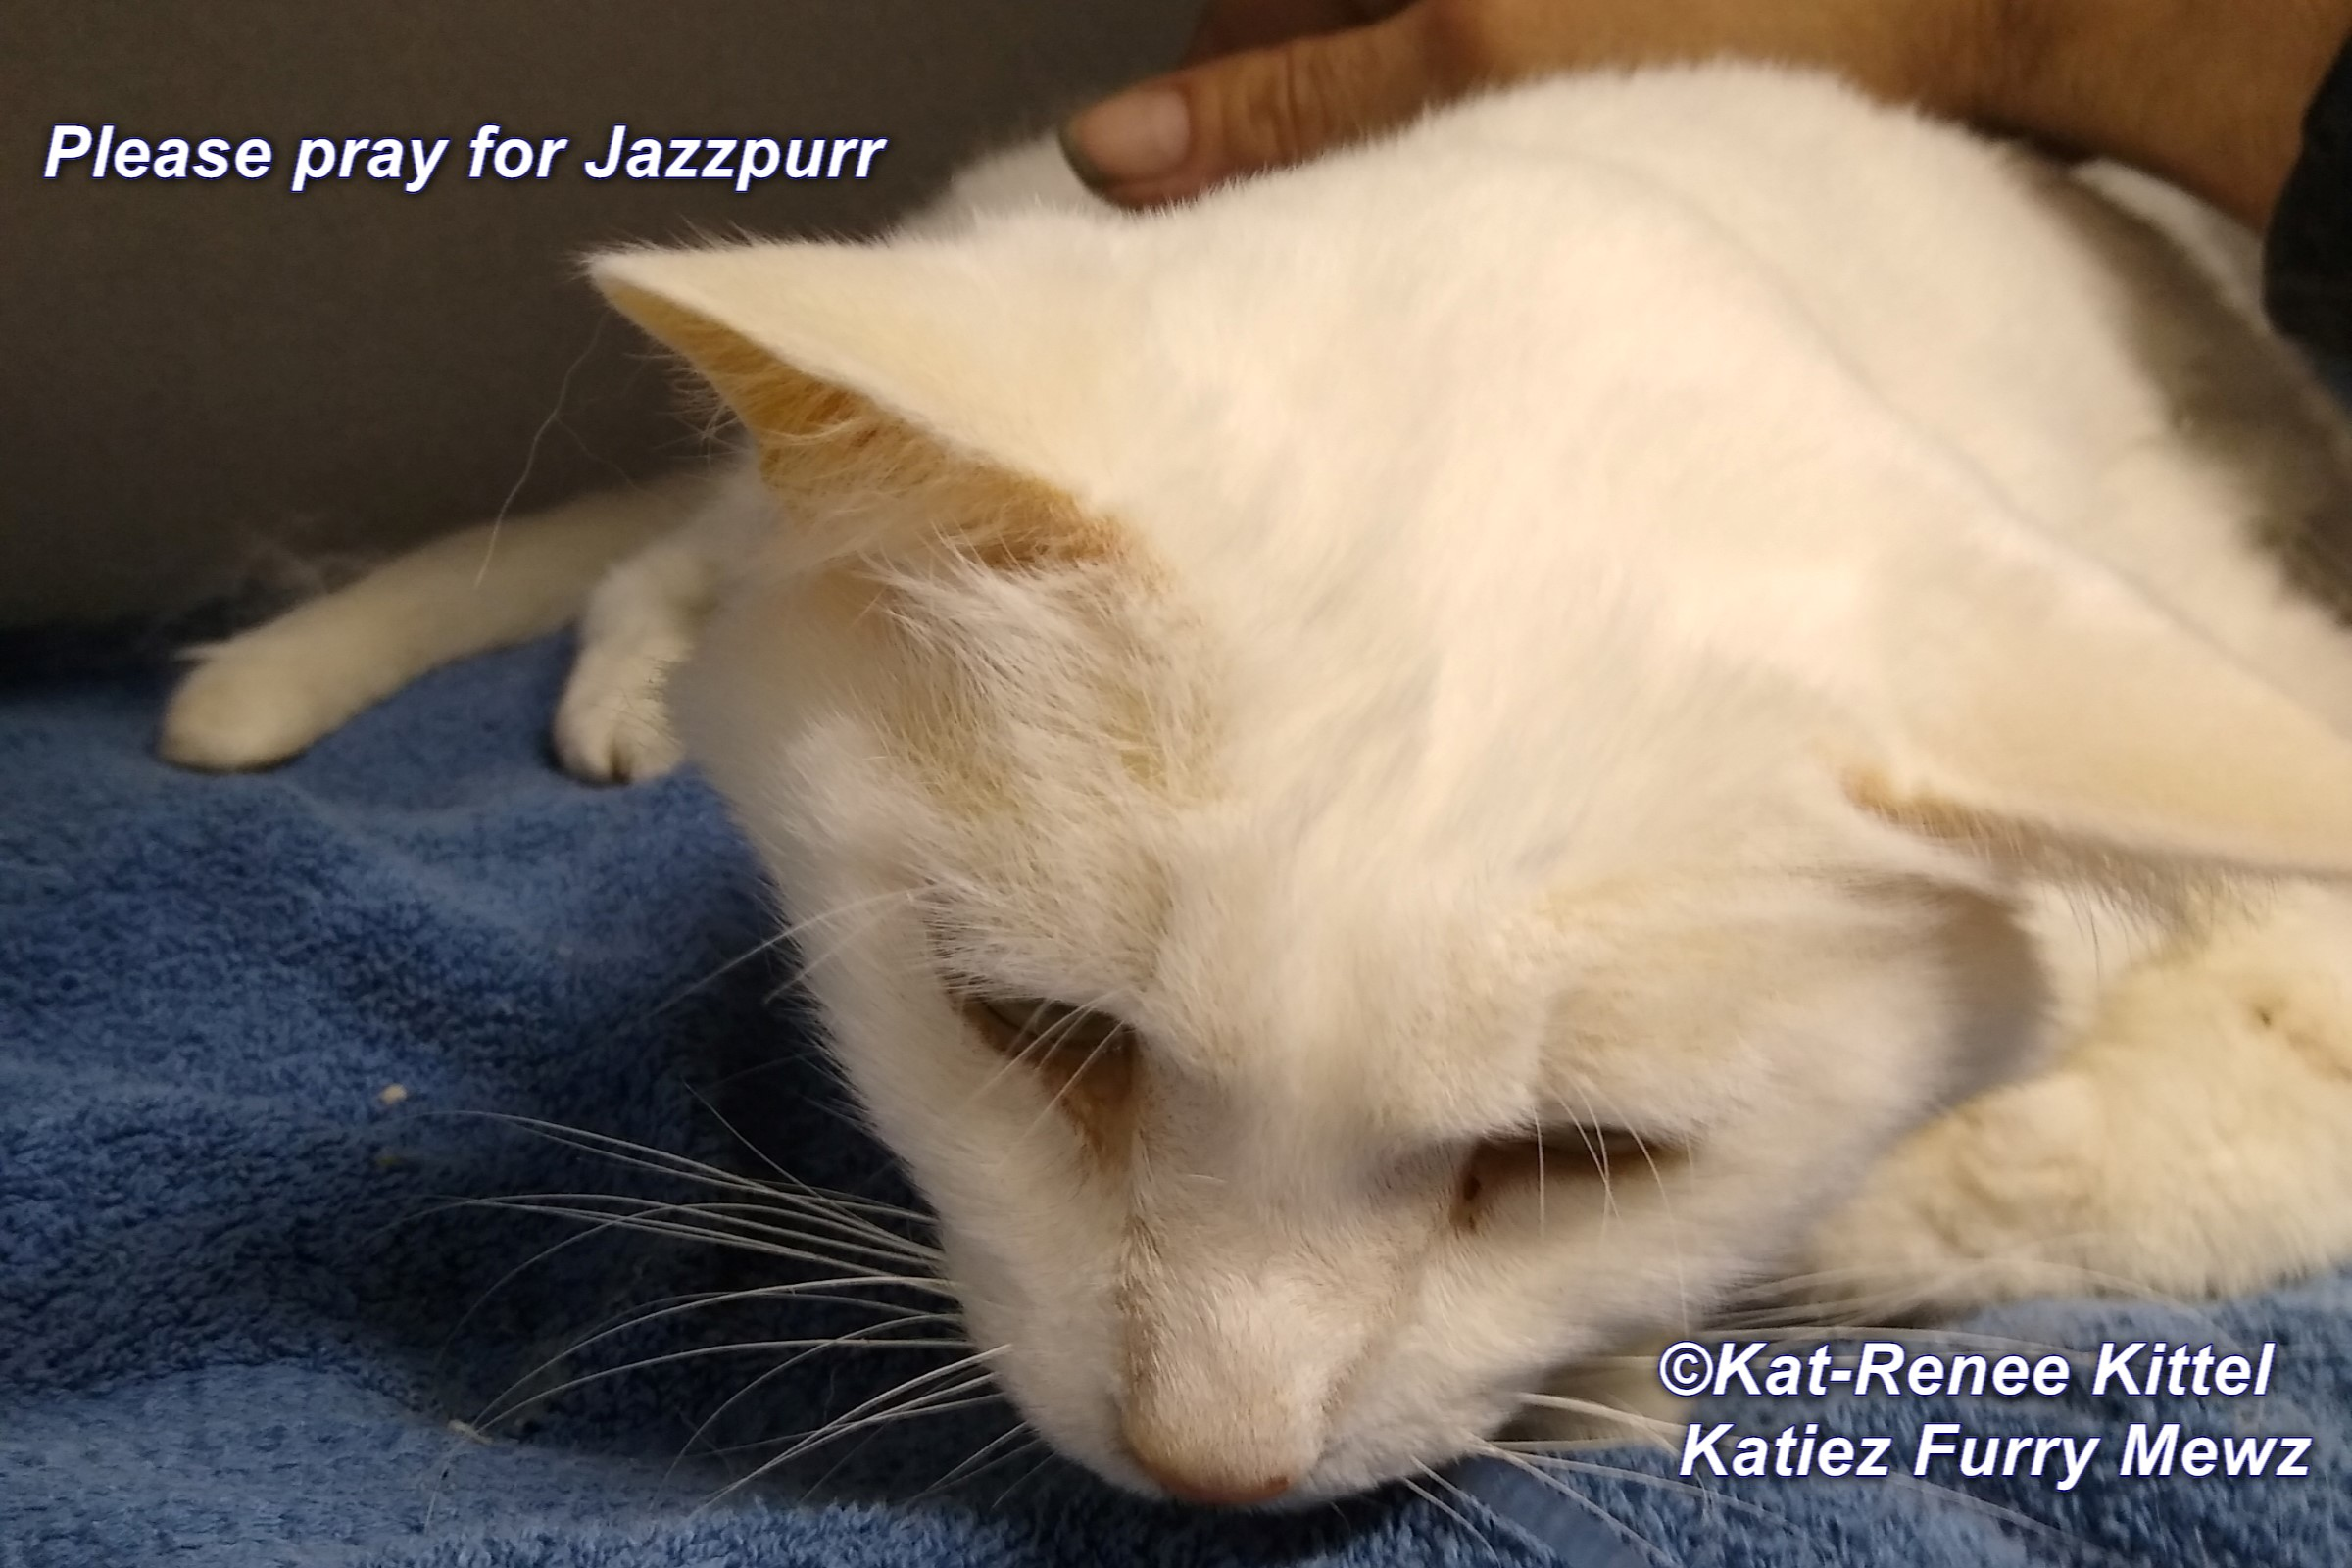 Purrs 'n Prayers For Jazzpurr